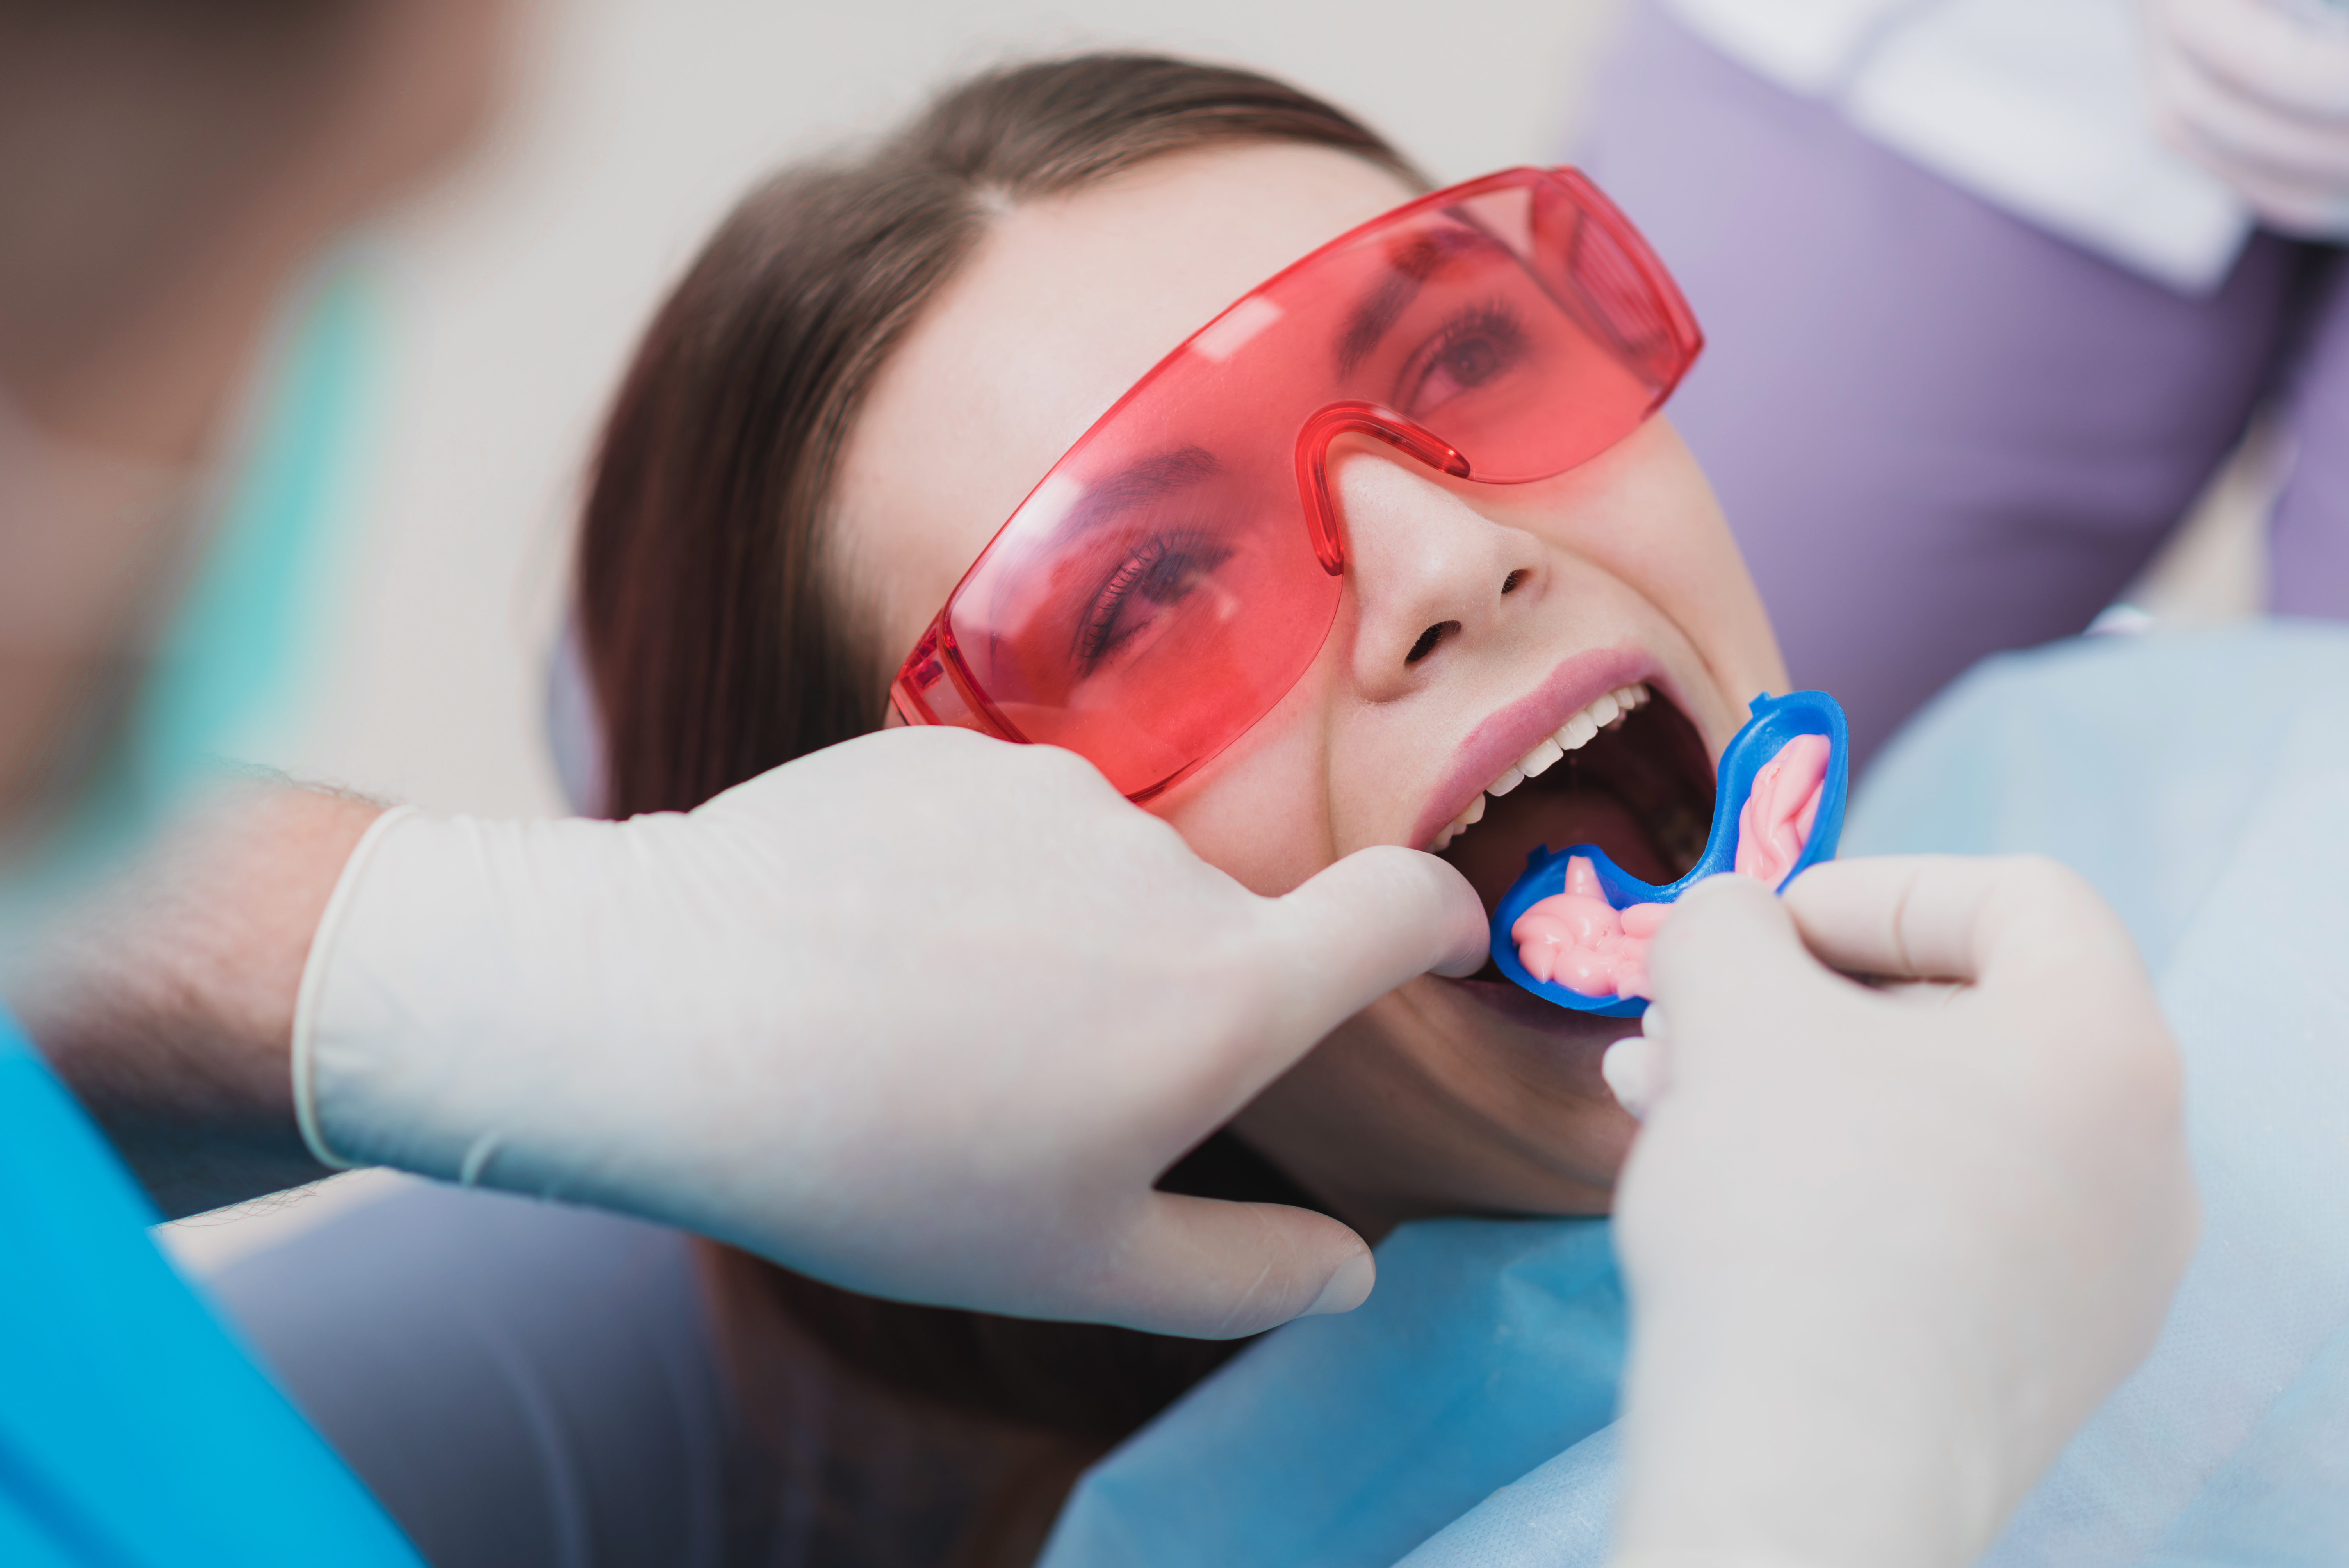 dentist putting fluoride tray into a young woman's mouth